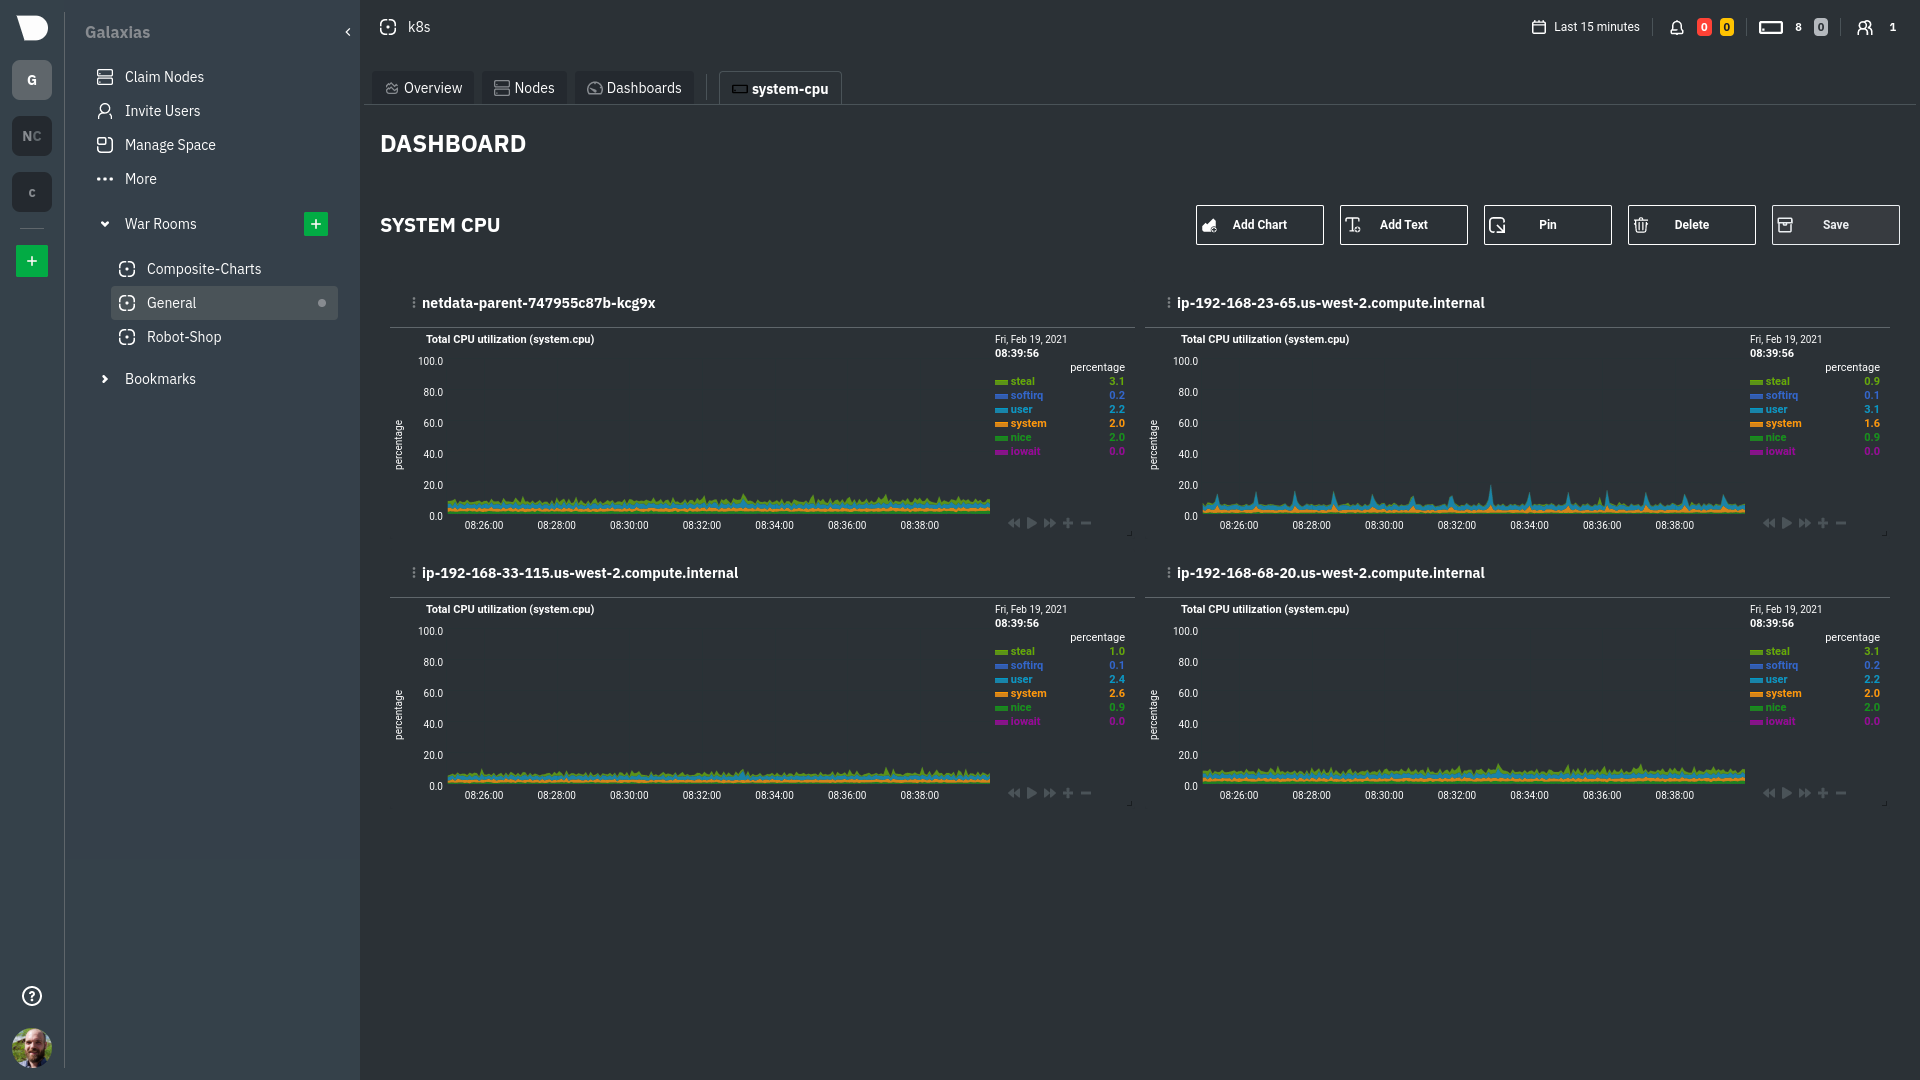 An example system CPU dashboard